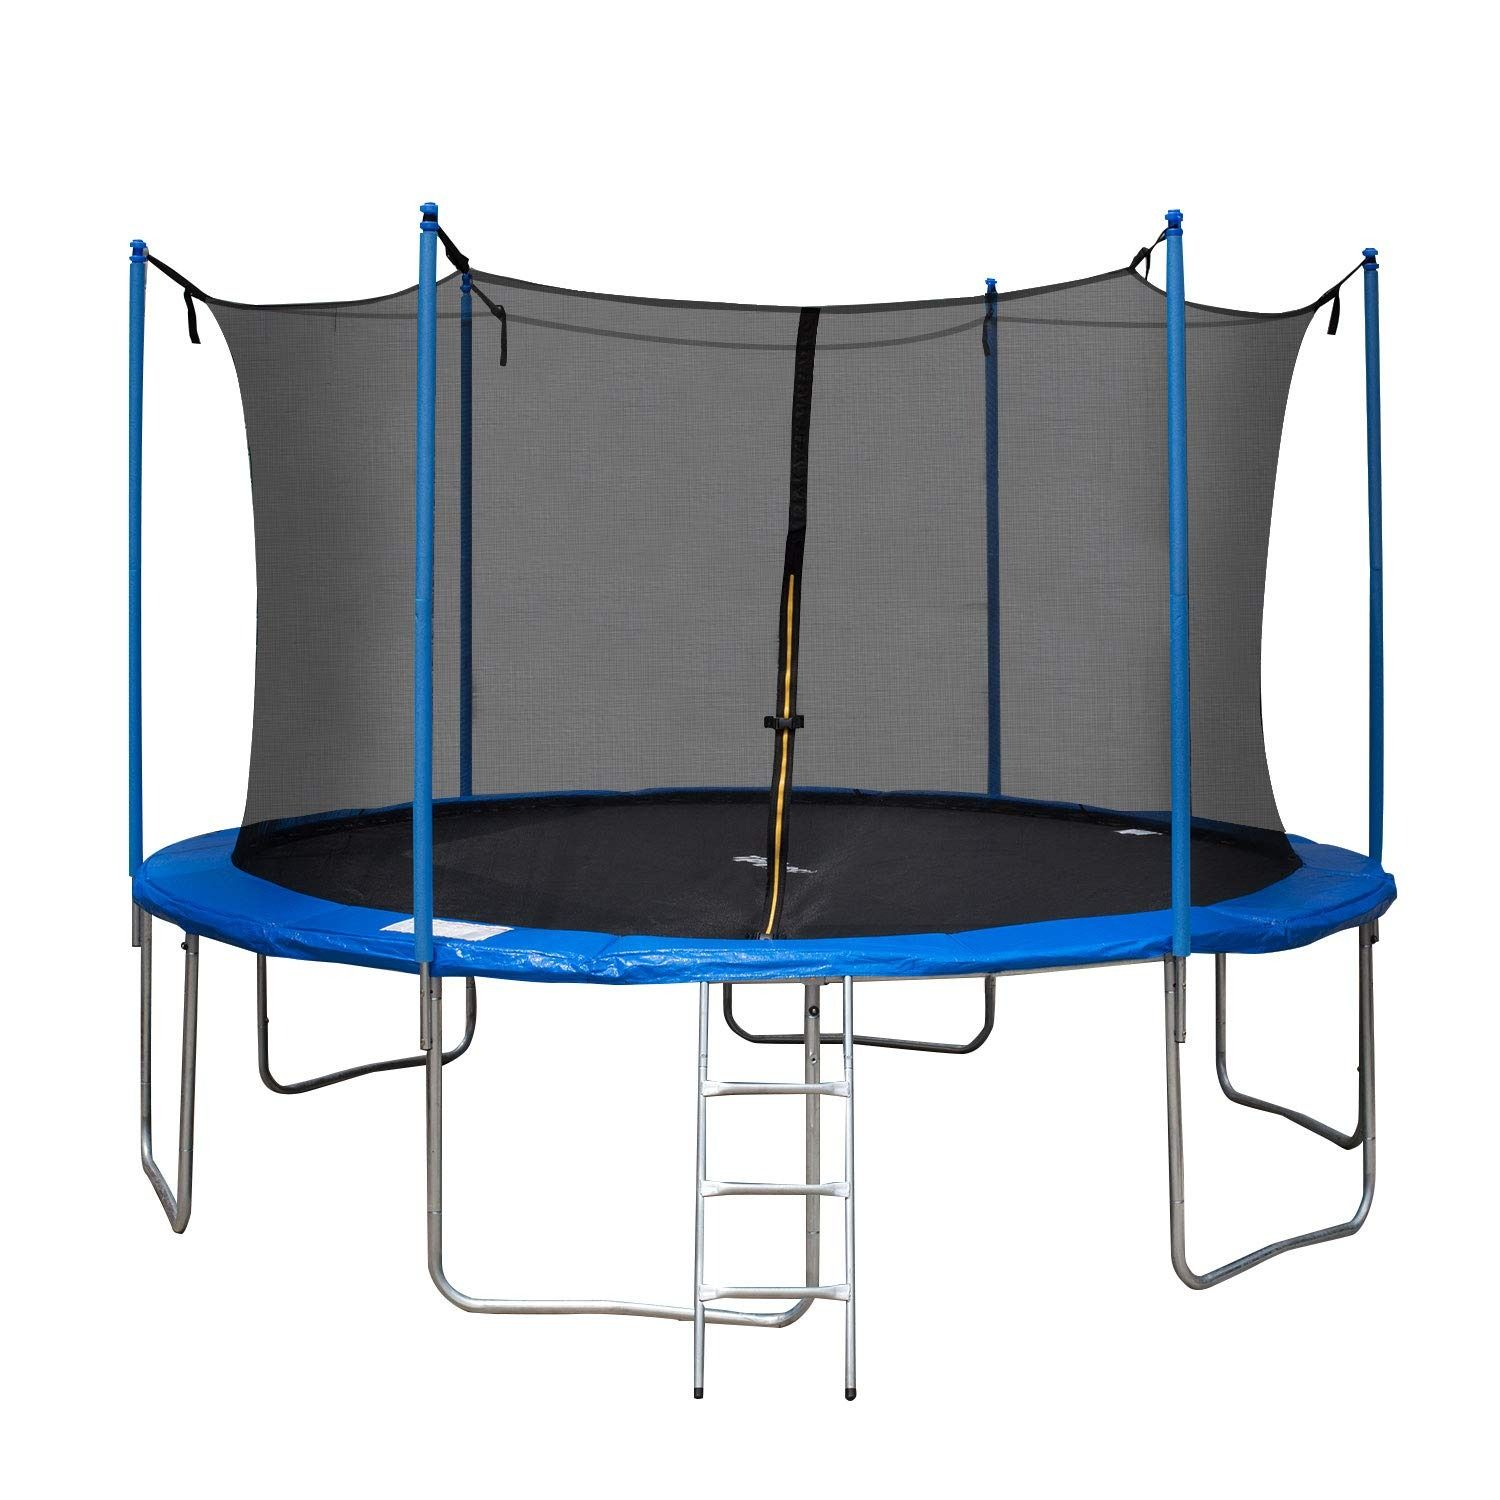 Tiptiper 12 Ft Trampoline Outdoor Trampoline With Safety Enclosures Net And Ladder Round Trampoline